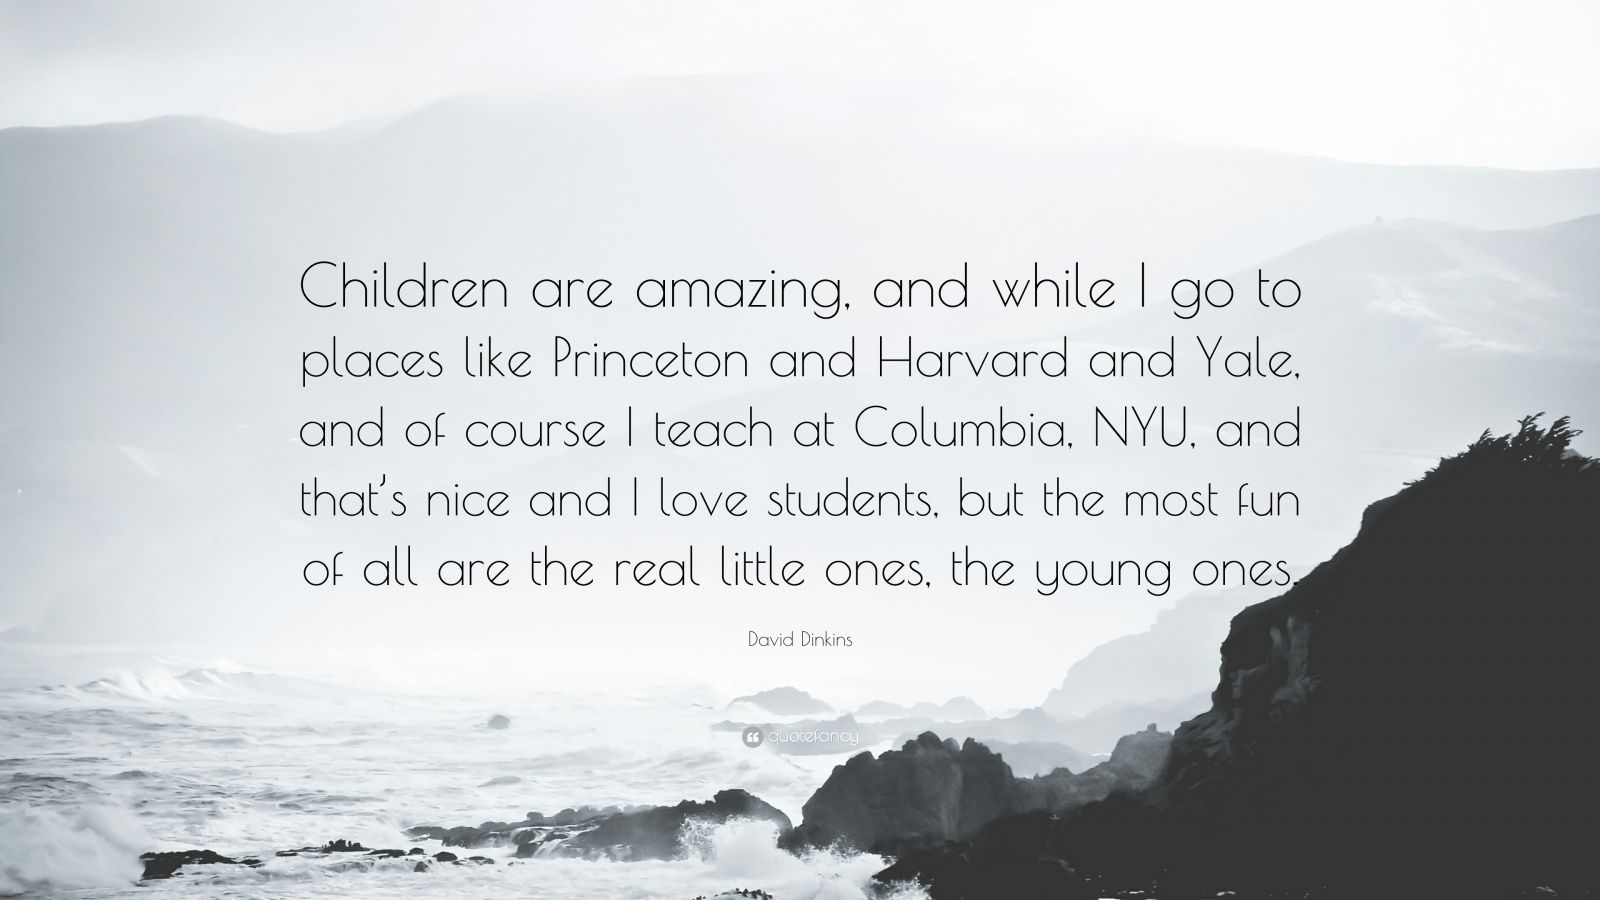 david dinkins quote children are amazing and while i go to places like princeton and harvard and yale and of course i teach at columbia n 7 wallpapers quotefancy david dinkins quote children are